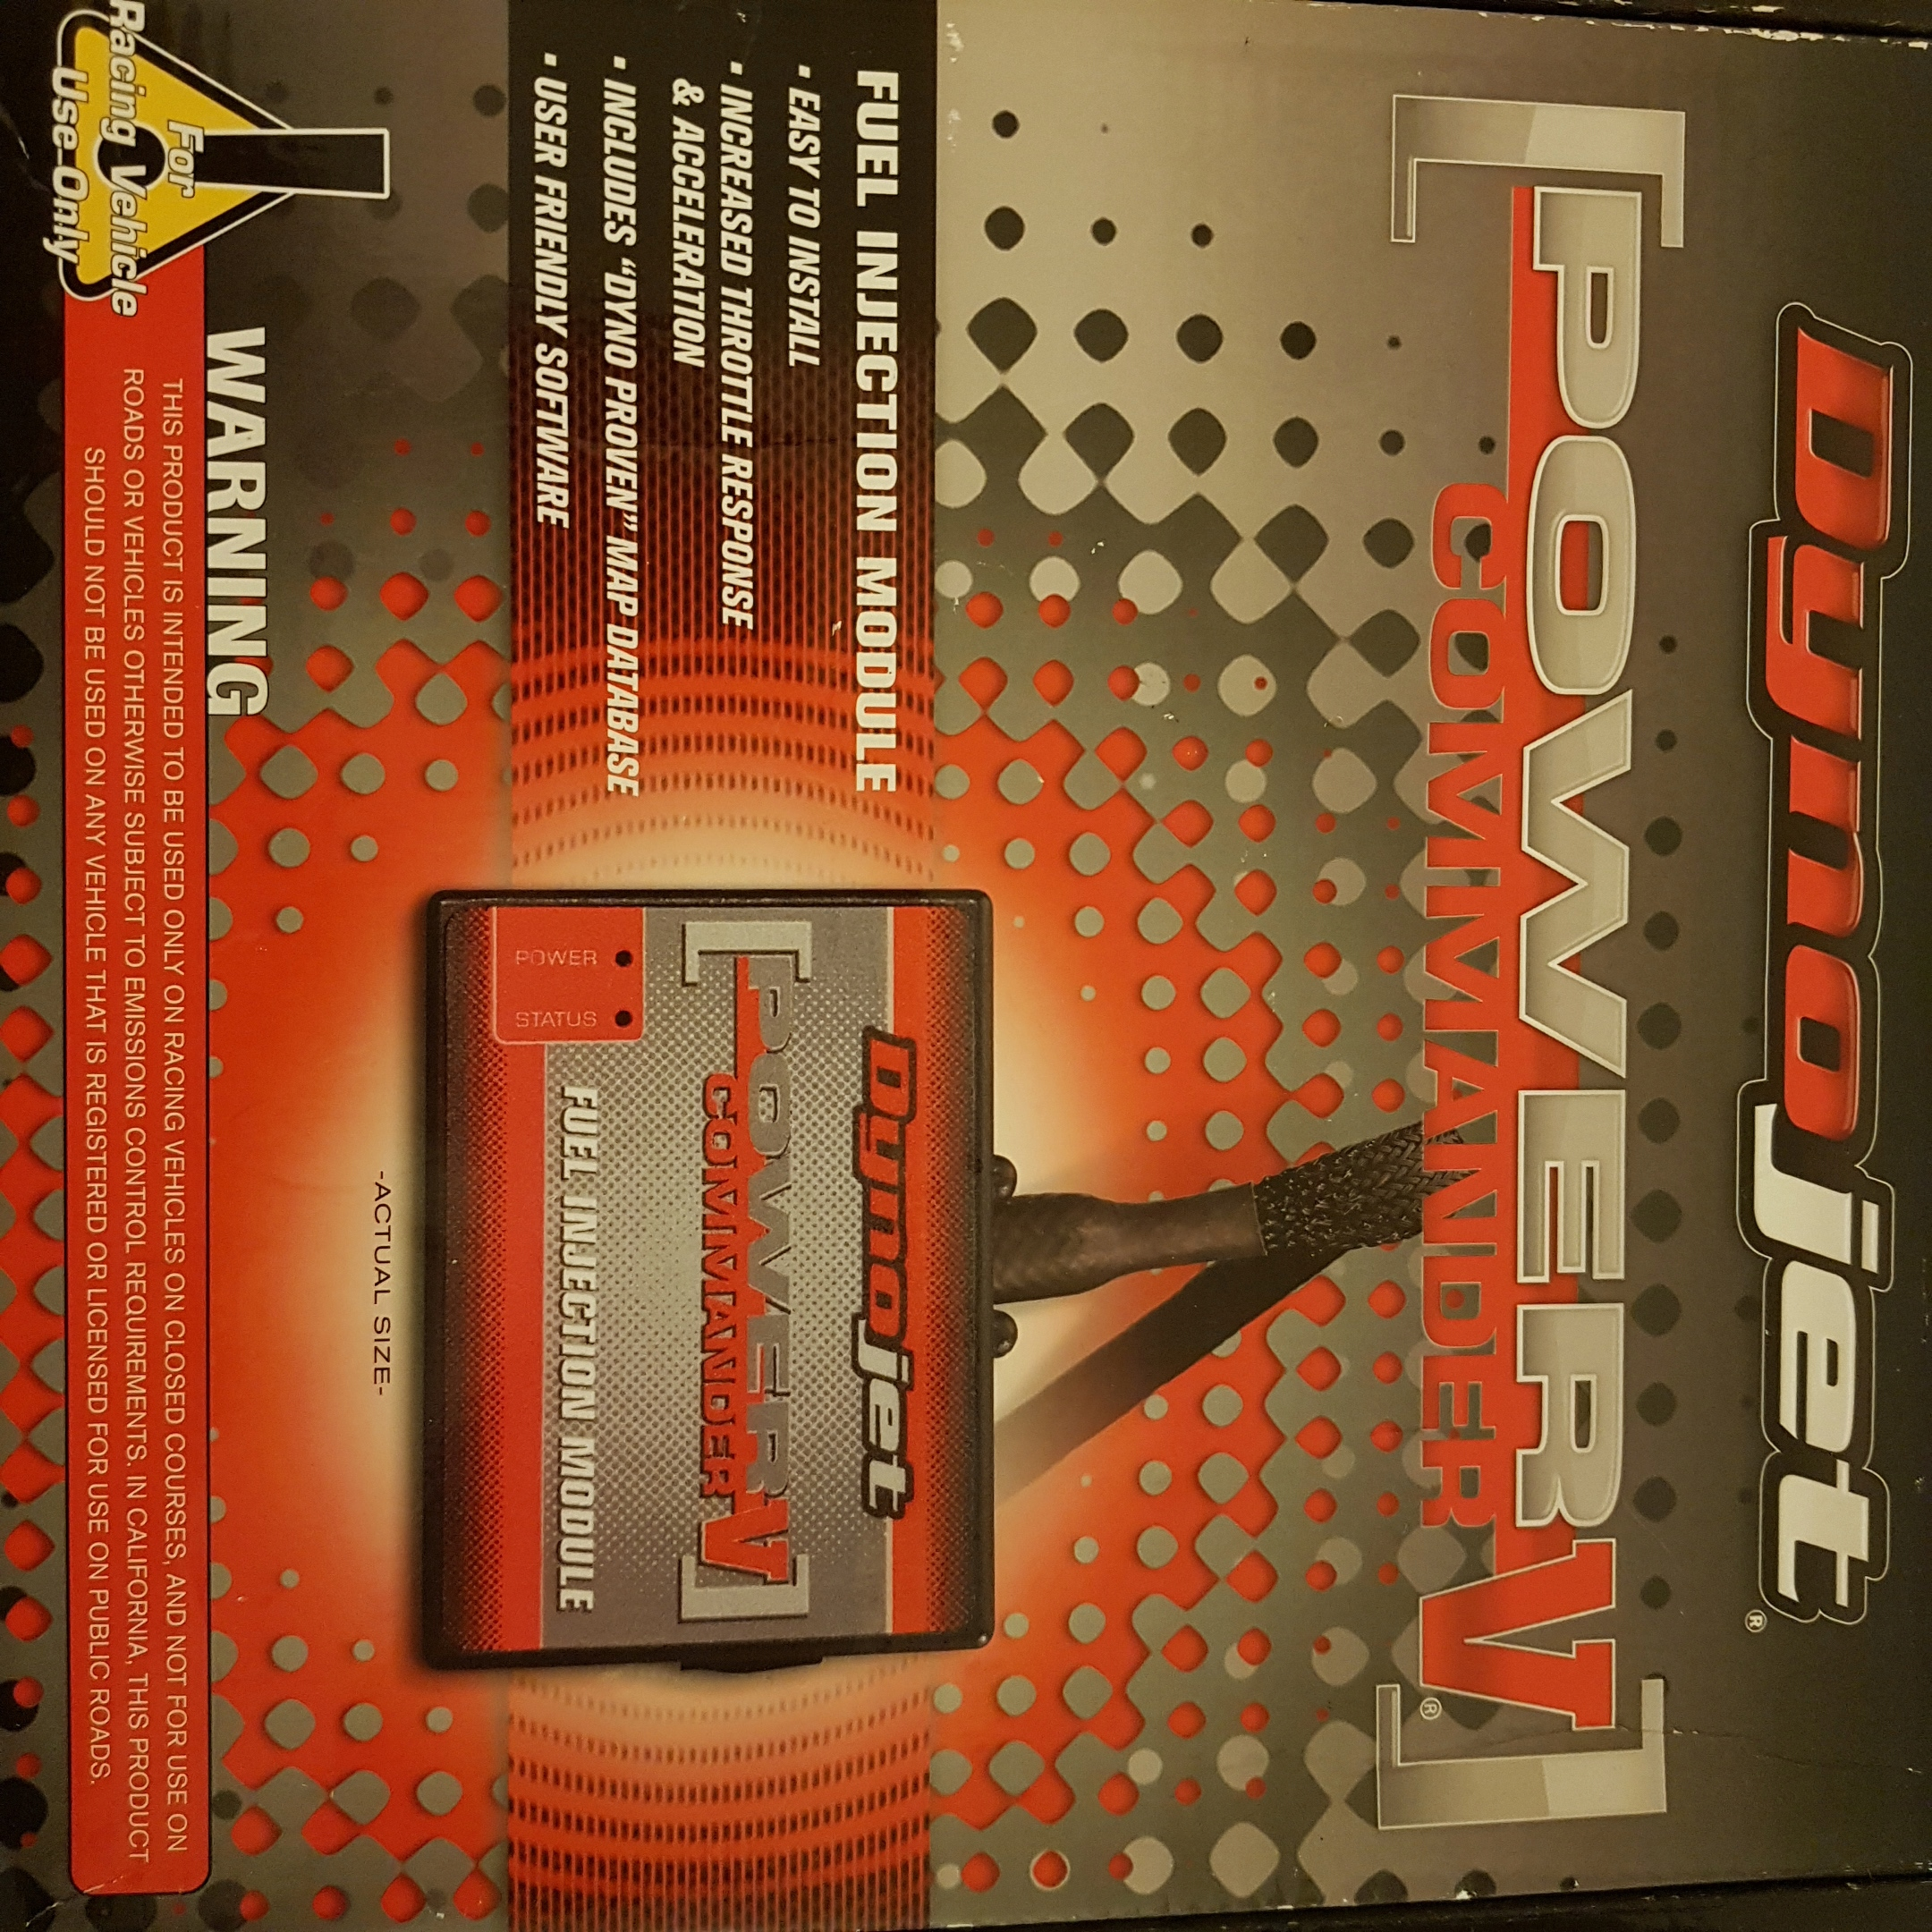 Dynoyet Power Commander V - Yamaha XT660 R/X/Z